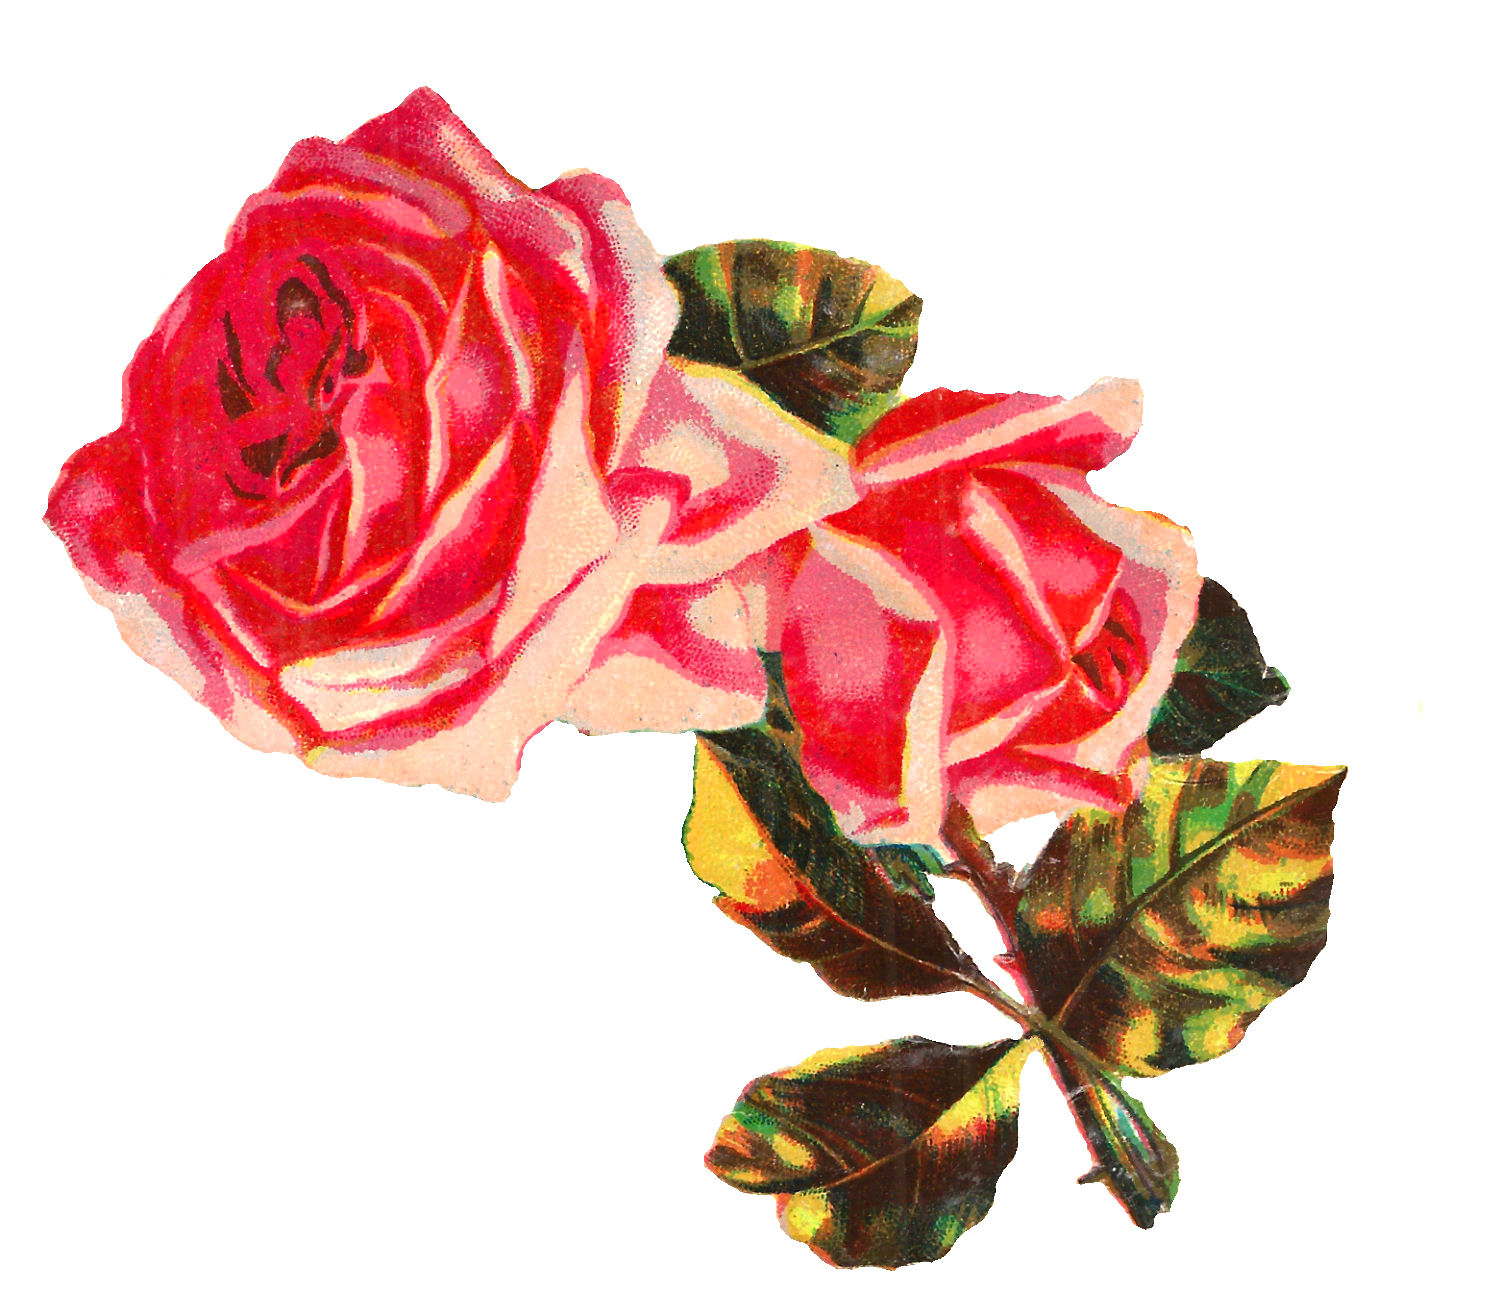 Antique Images: Free Shabby Chic Pink Rose Image Clip Art ...